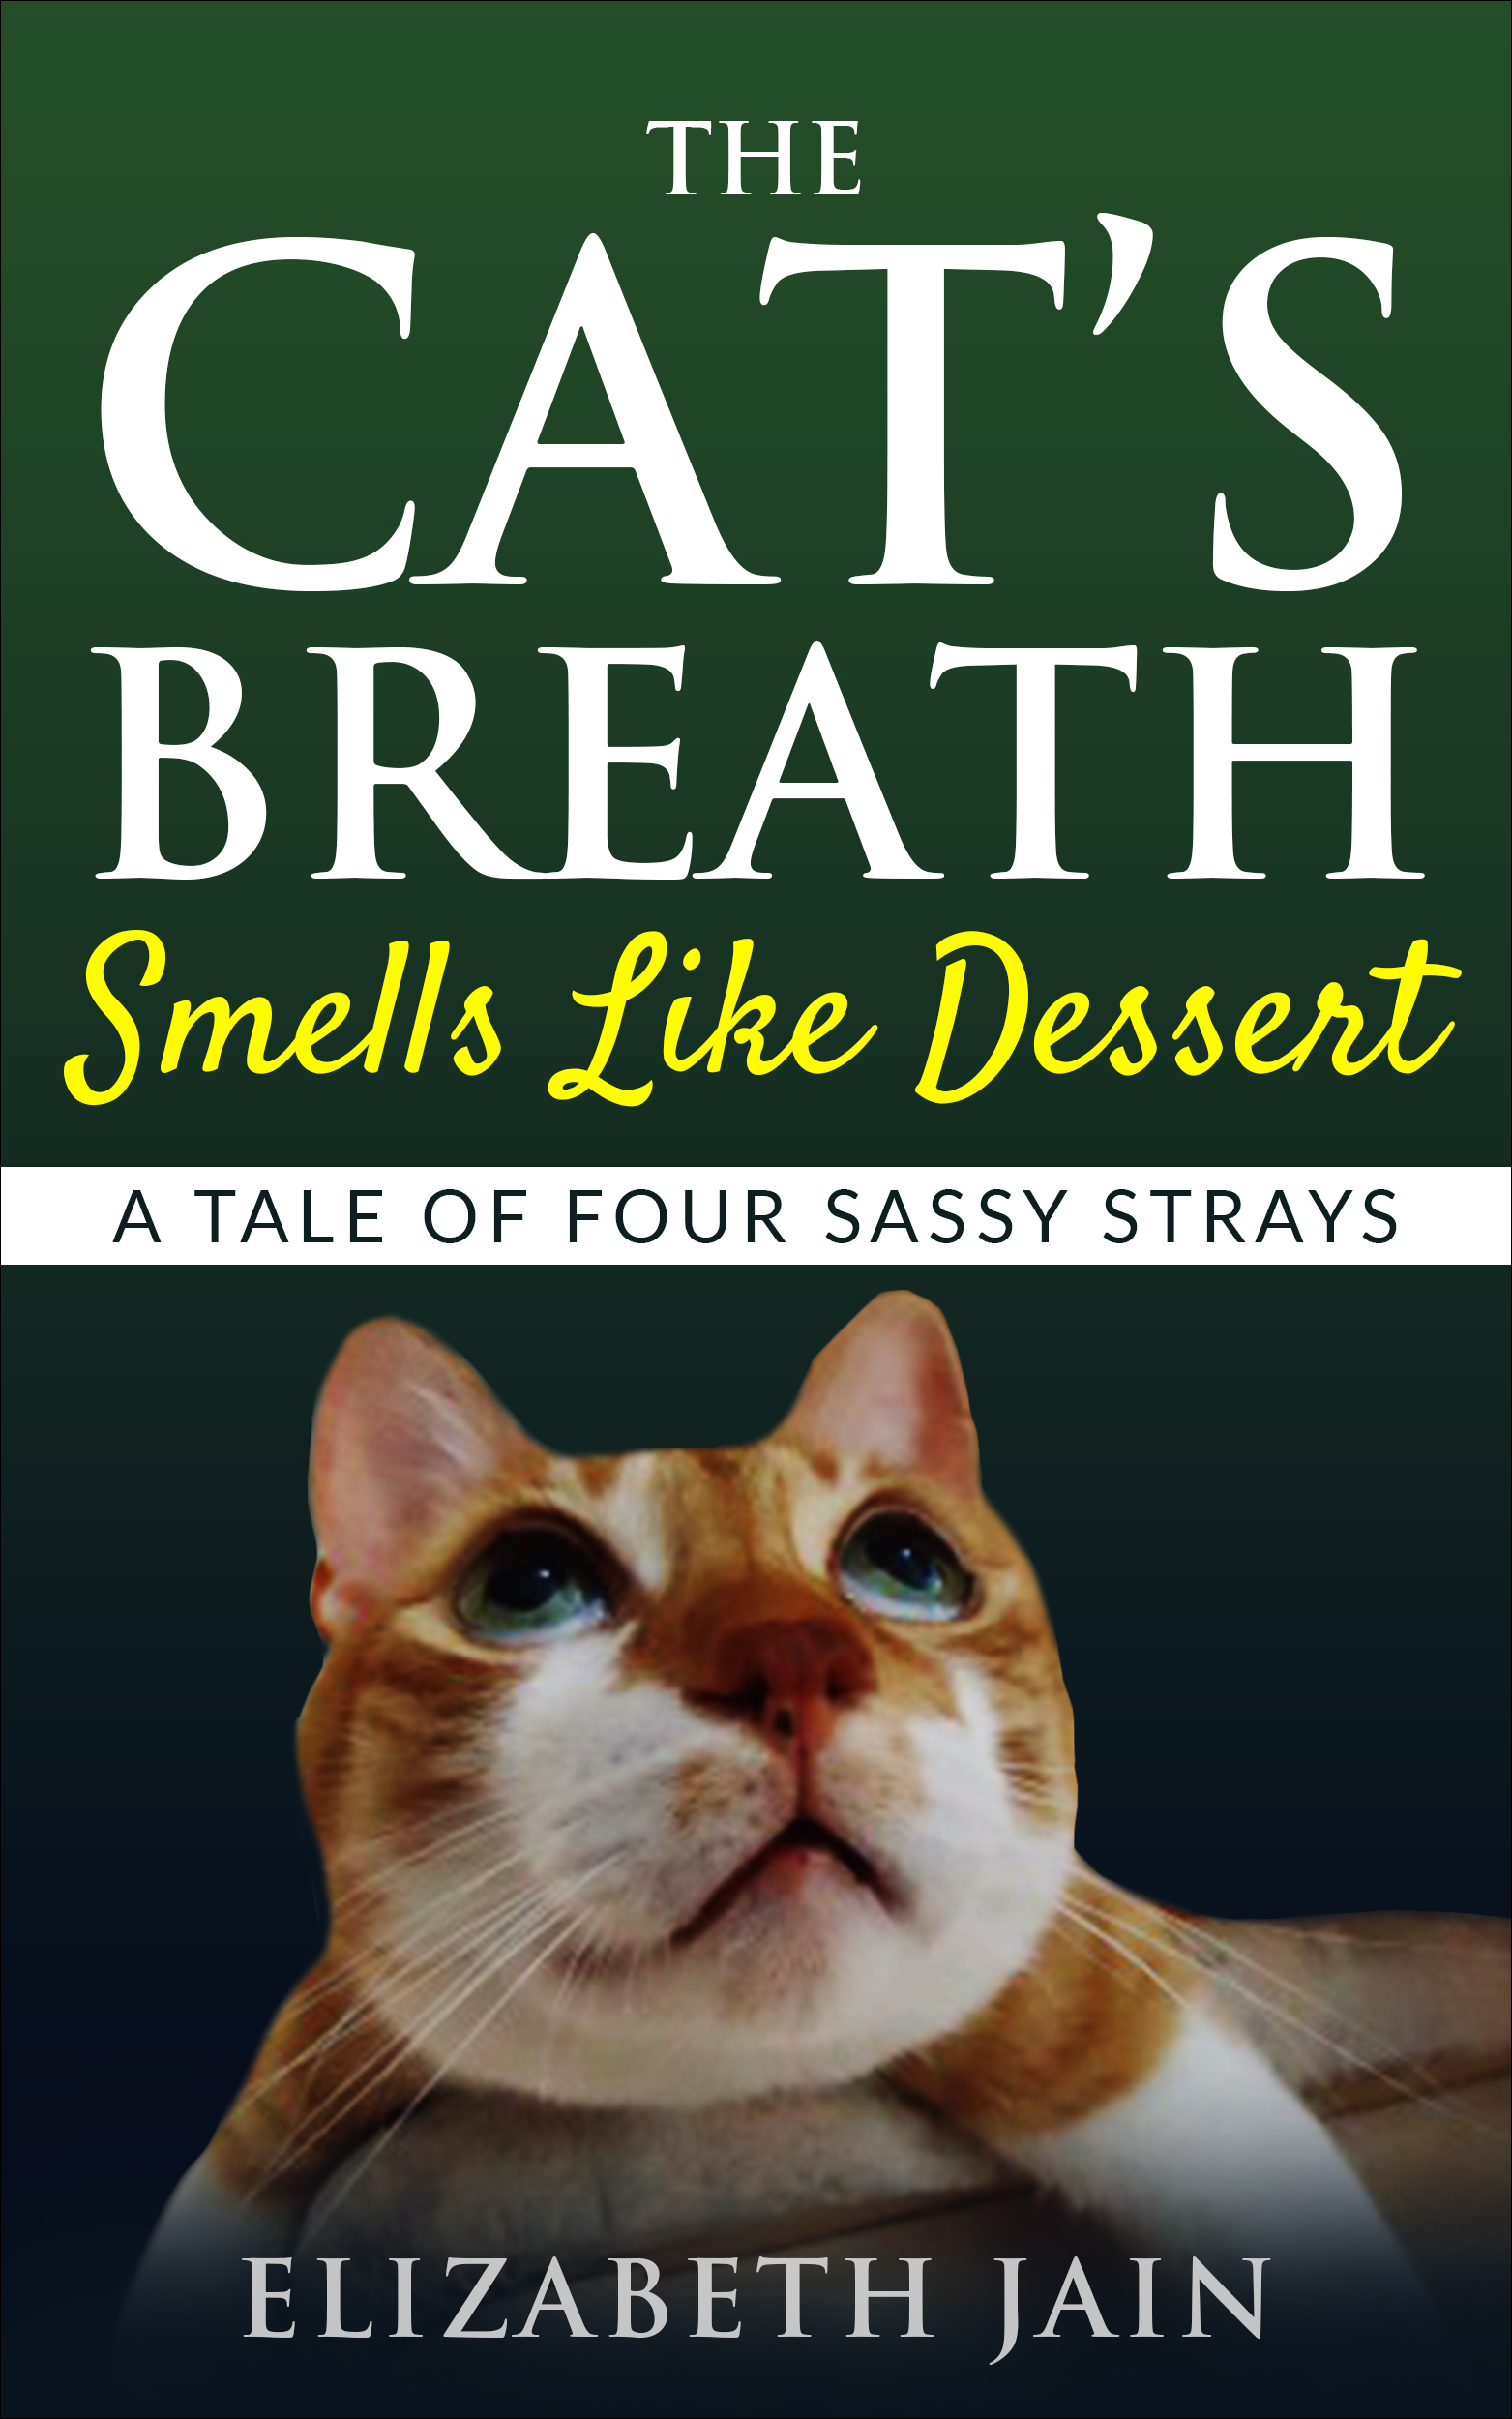 The Cat's Breath Smells Like Dessert: A Tale of Four Sassy Strays [electronic resource]